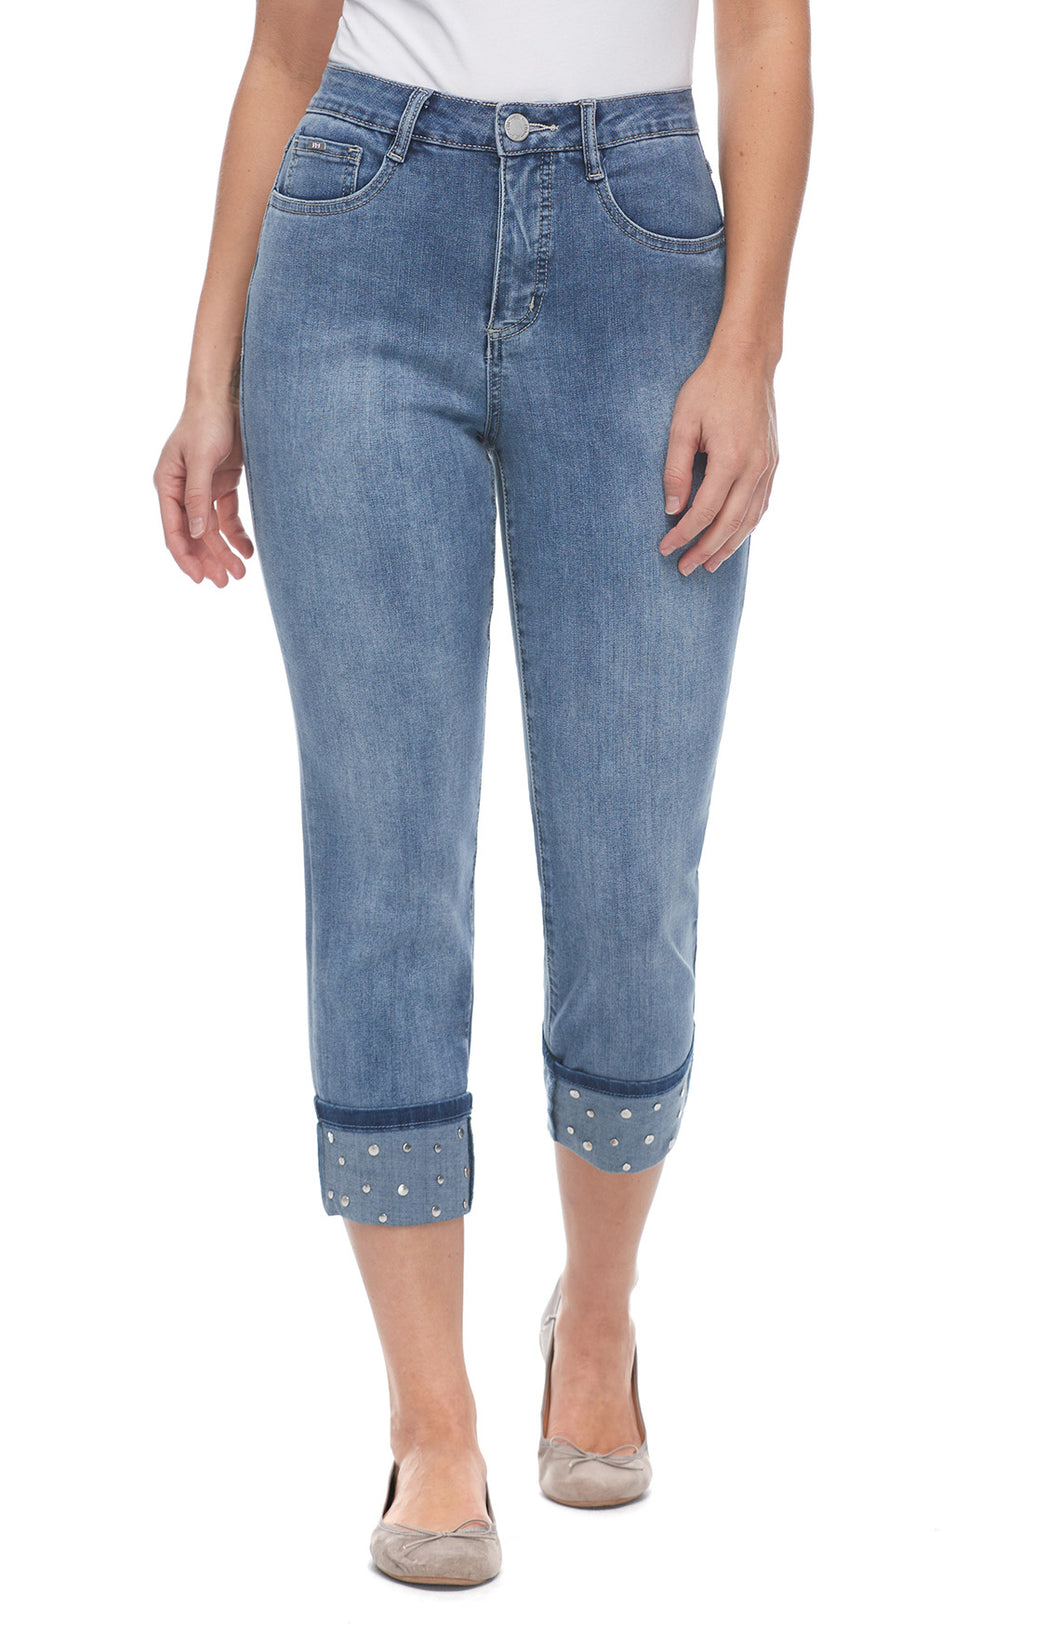 Suzanne Roll-Up Crop Jean